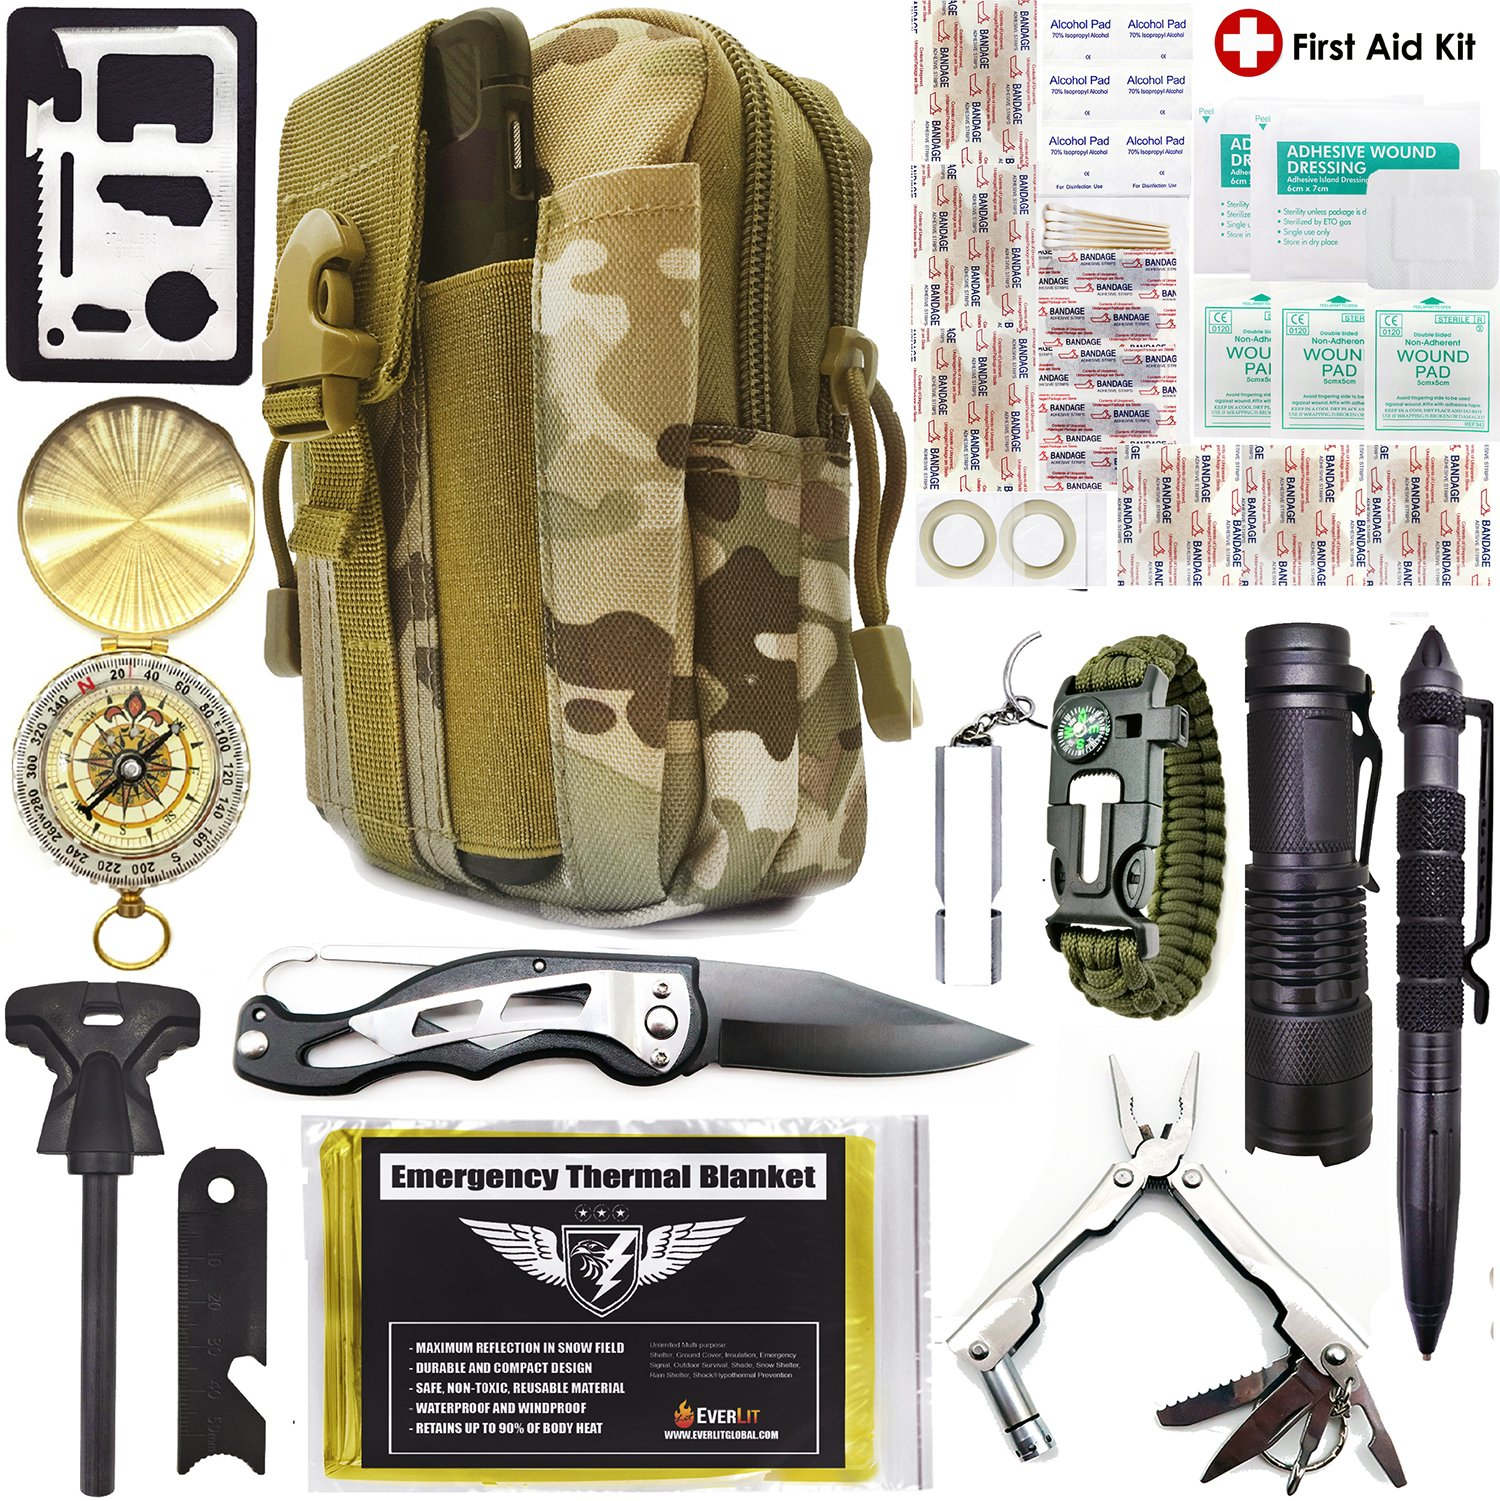 EVERLIT Emergency Survival Kit 40-in-1 Molle Pouch, Tactical Outdoor Gears, First Aid Supply, Survival Bracelet, Emergency Blanket, Tactical Pen, Fire Starter, Plier, for Camping, Hiking, Hunting by EVERLIT